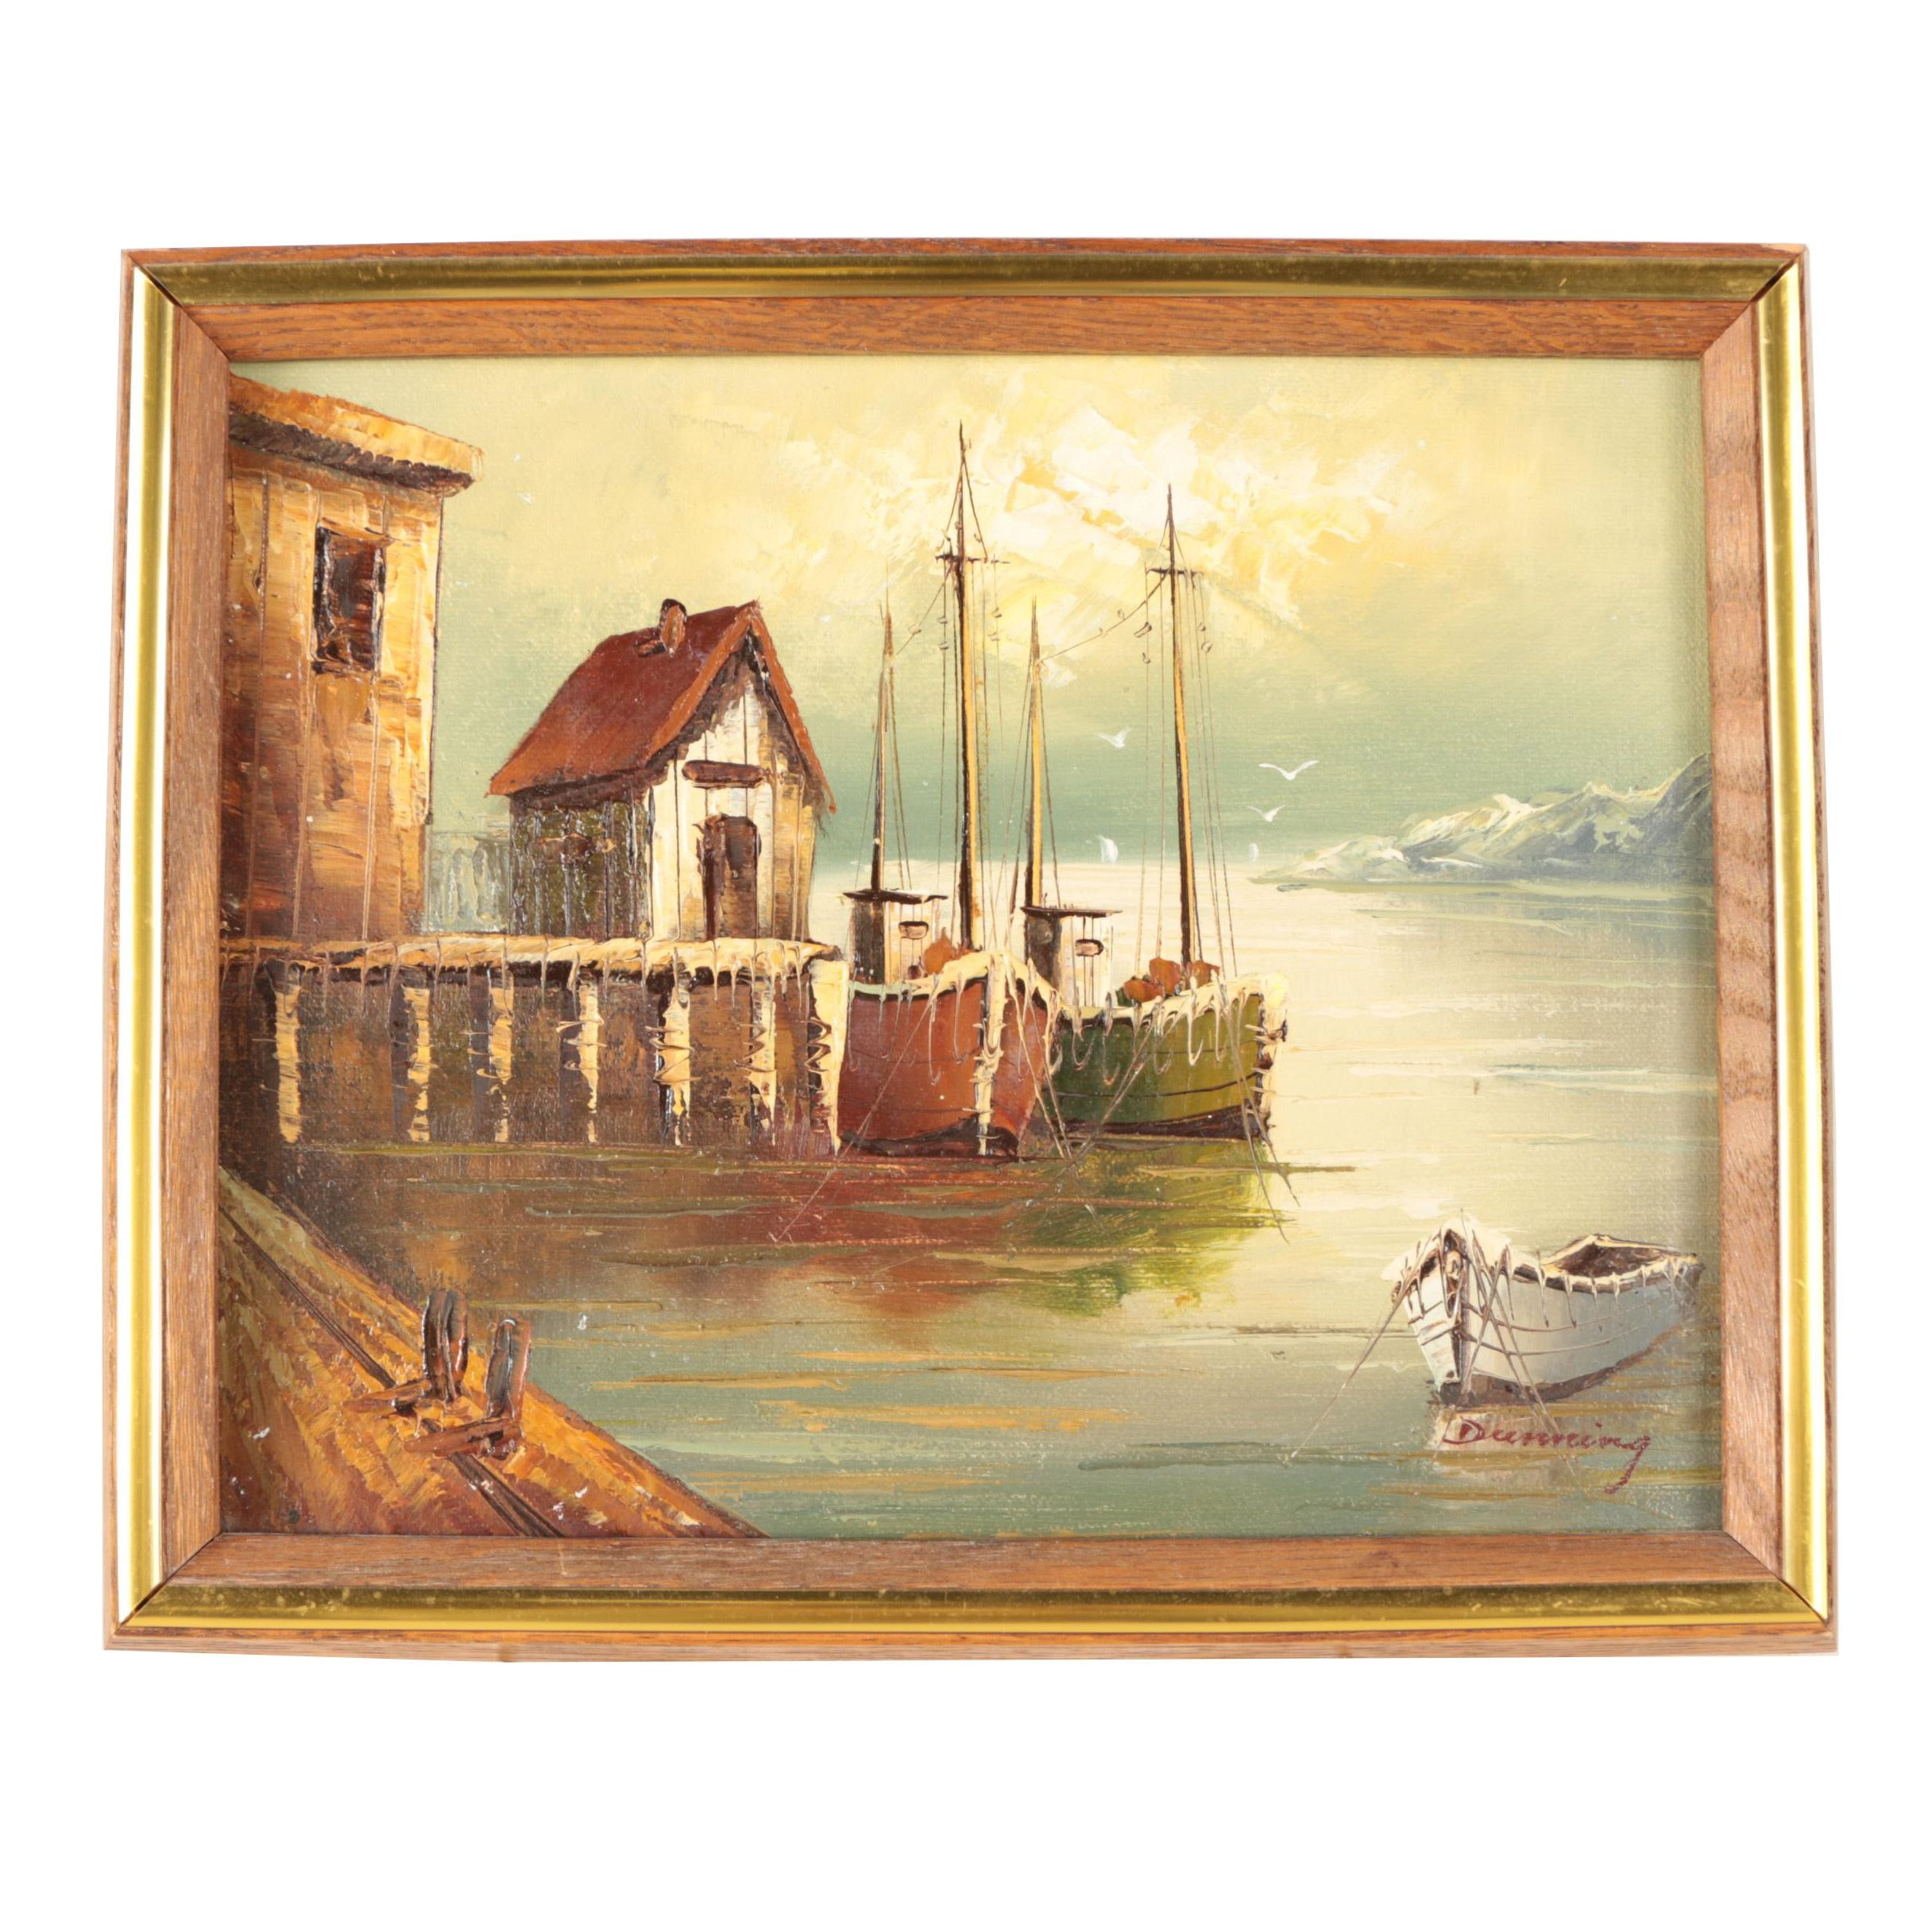 Dunning Oil Painting on Canvas of Boats at Small Fishing Harbor